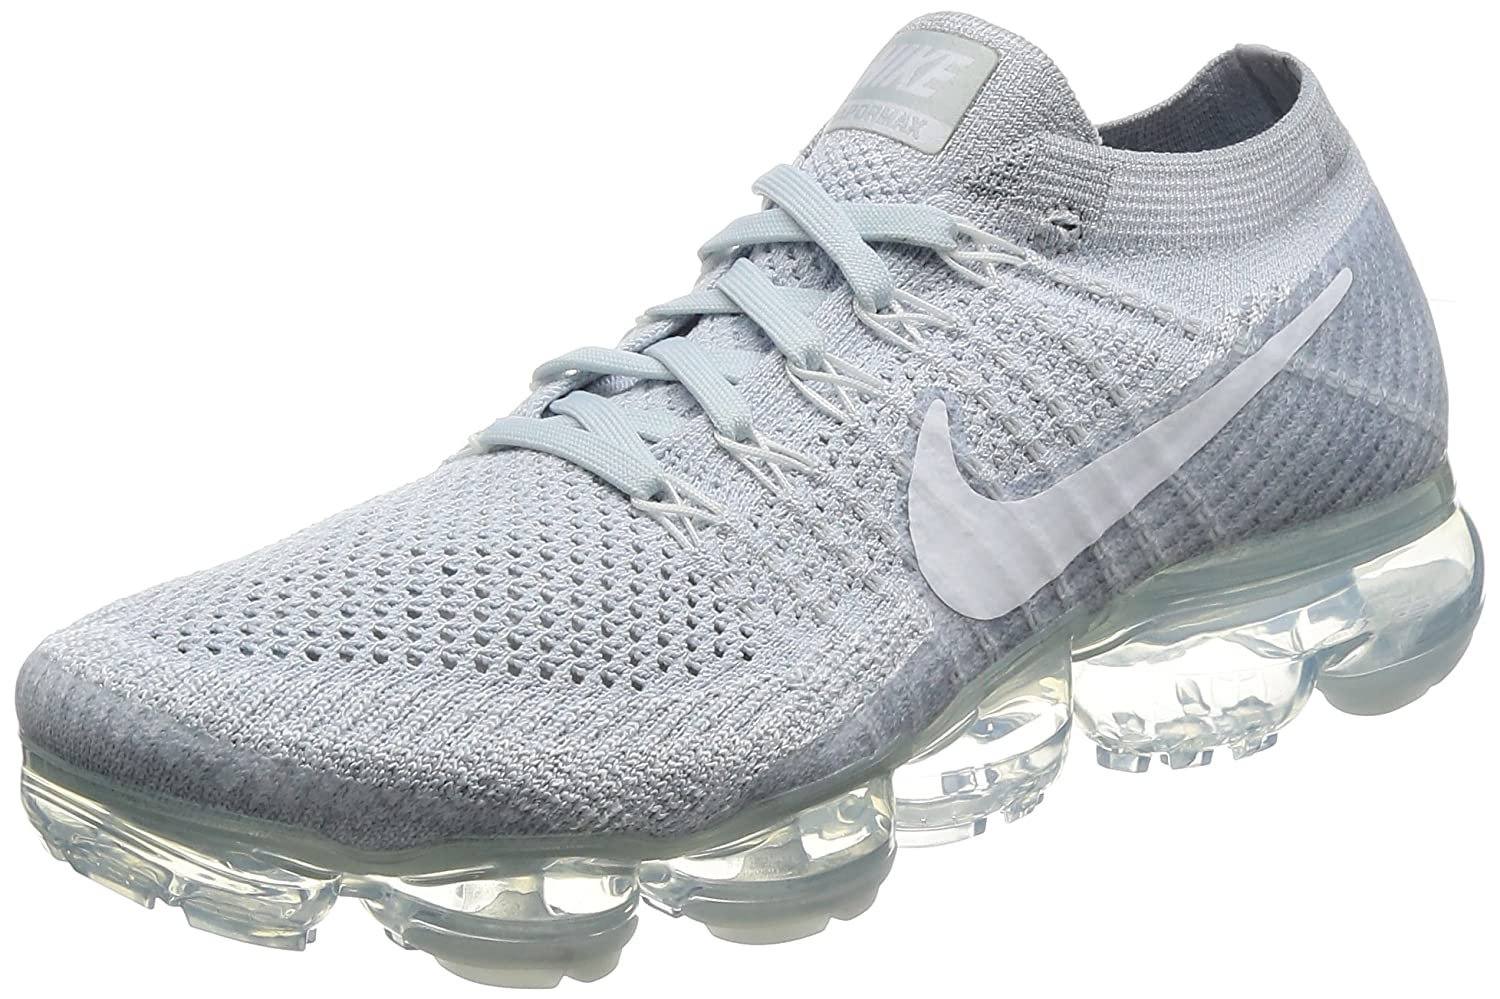 804840bf56 Amazon.com | Men's Nike Air Vapormax Flyknit Running Shoe | Fashion Sneakers